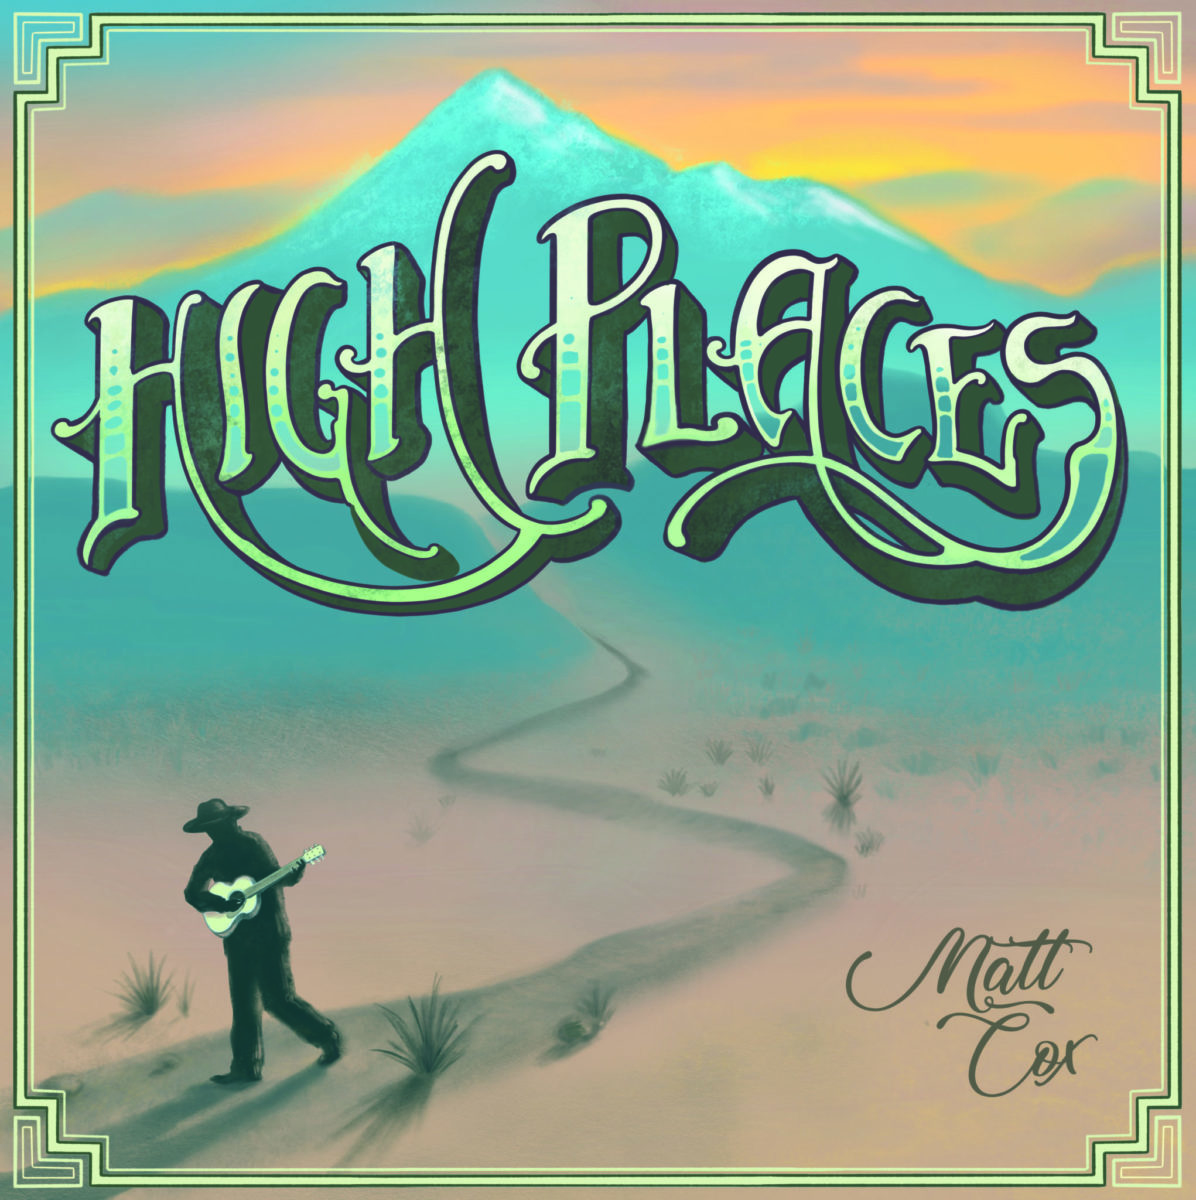 Folkers daily matt cox music omaha press matt cox will mark the release of his sixth studio album high places at the zoo bars fac this friday at 5 pm solutioingenieria Gallery